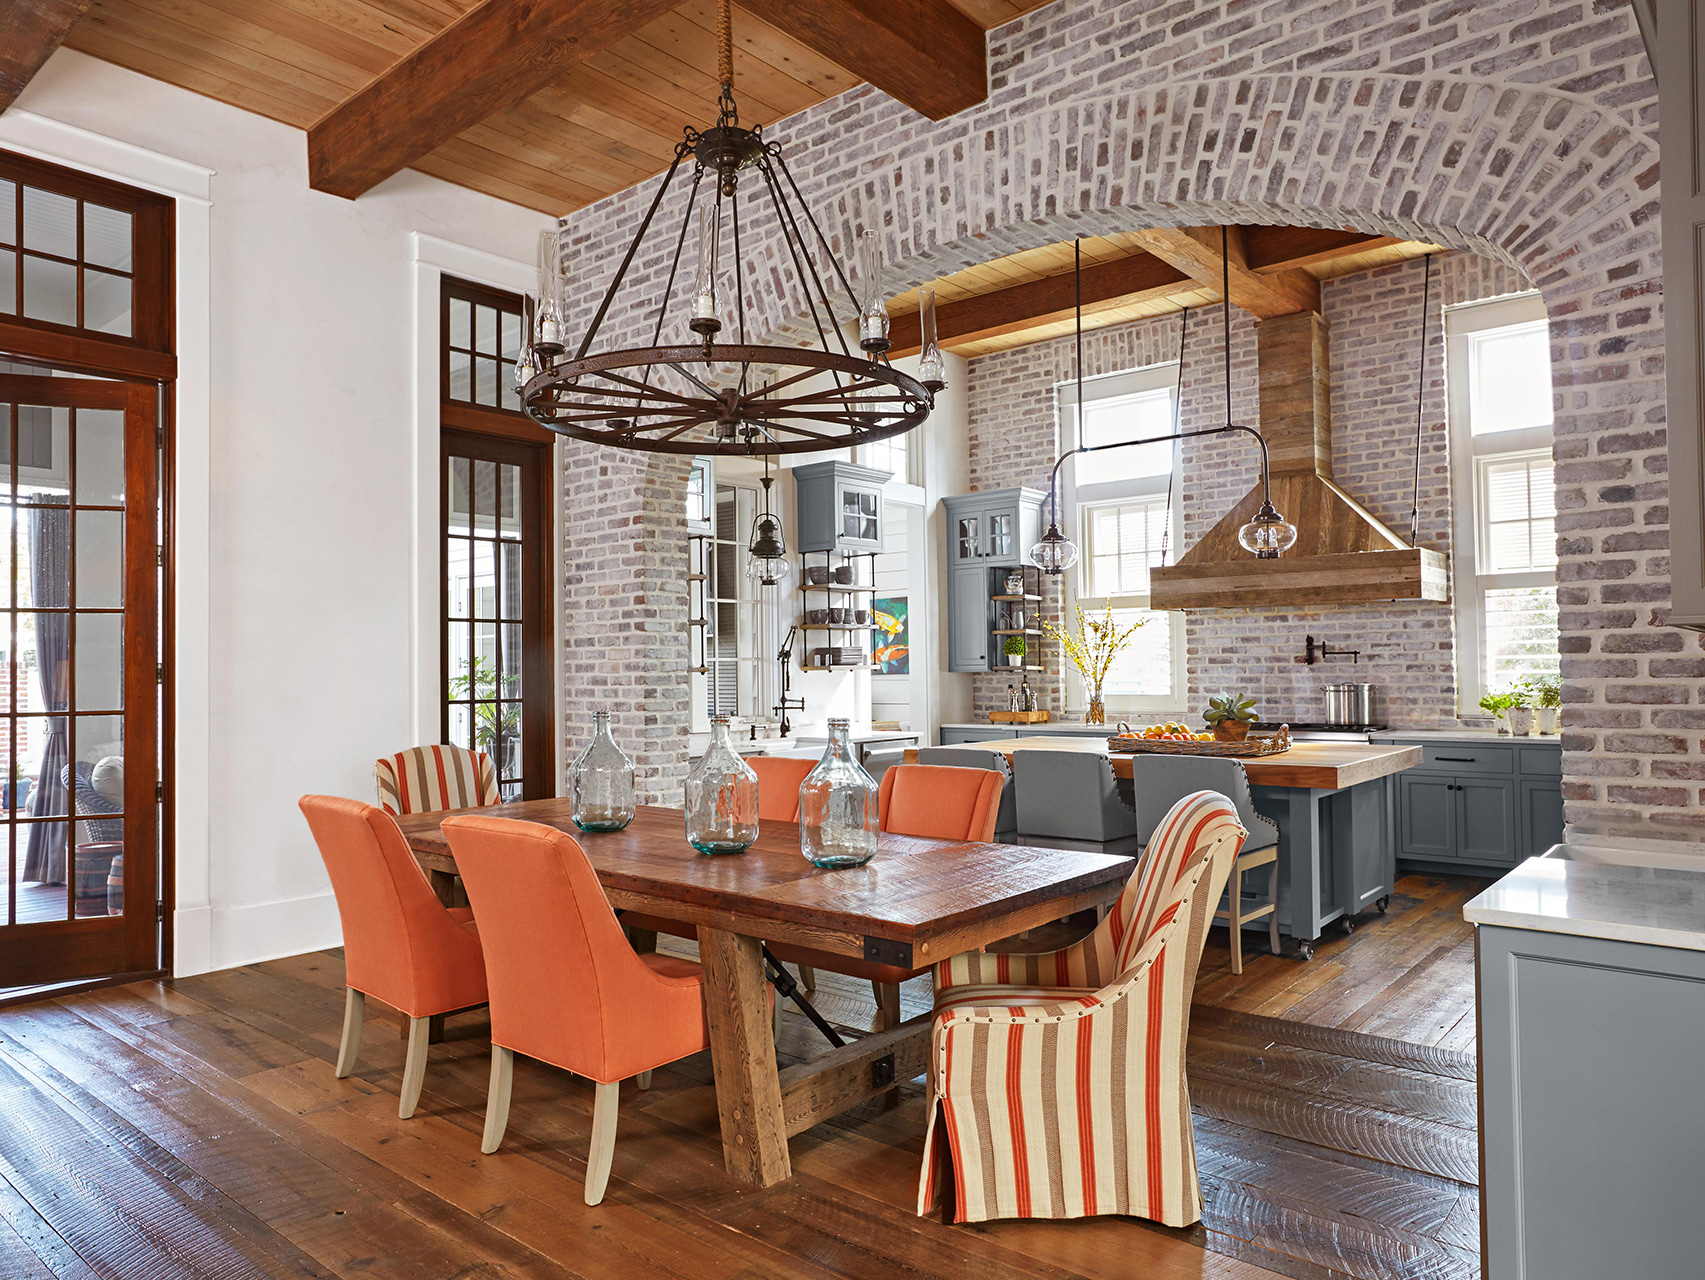 brick archway to kitchen and dining